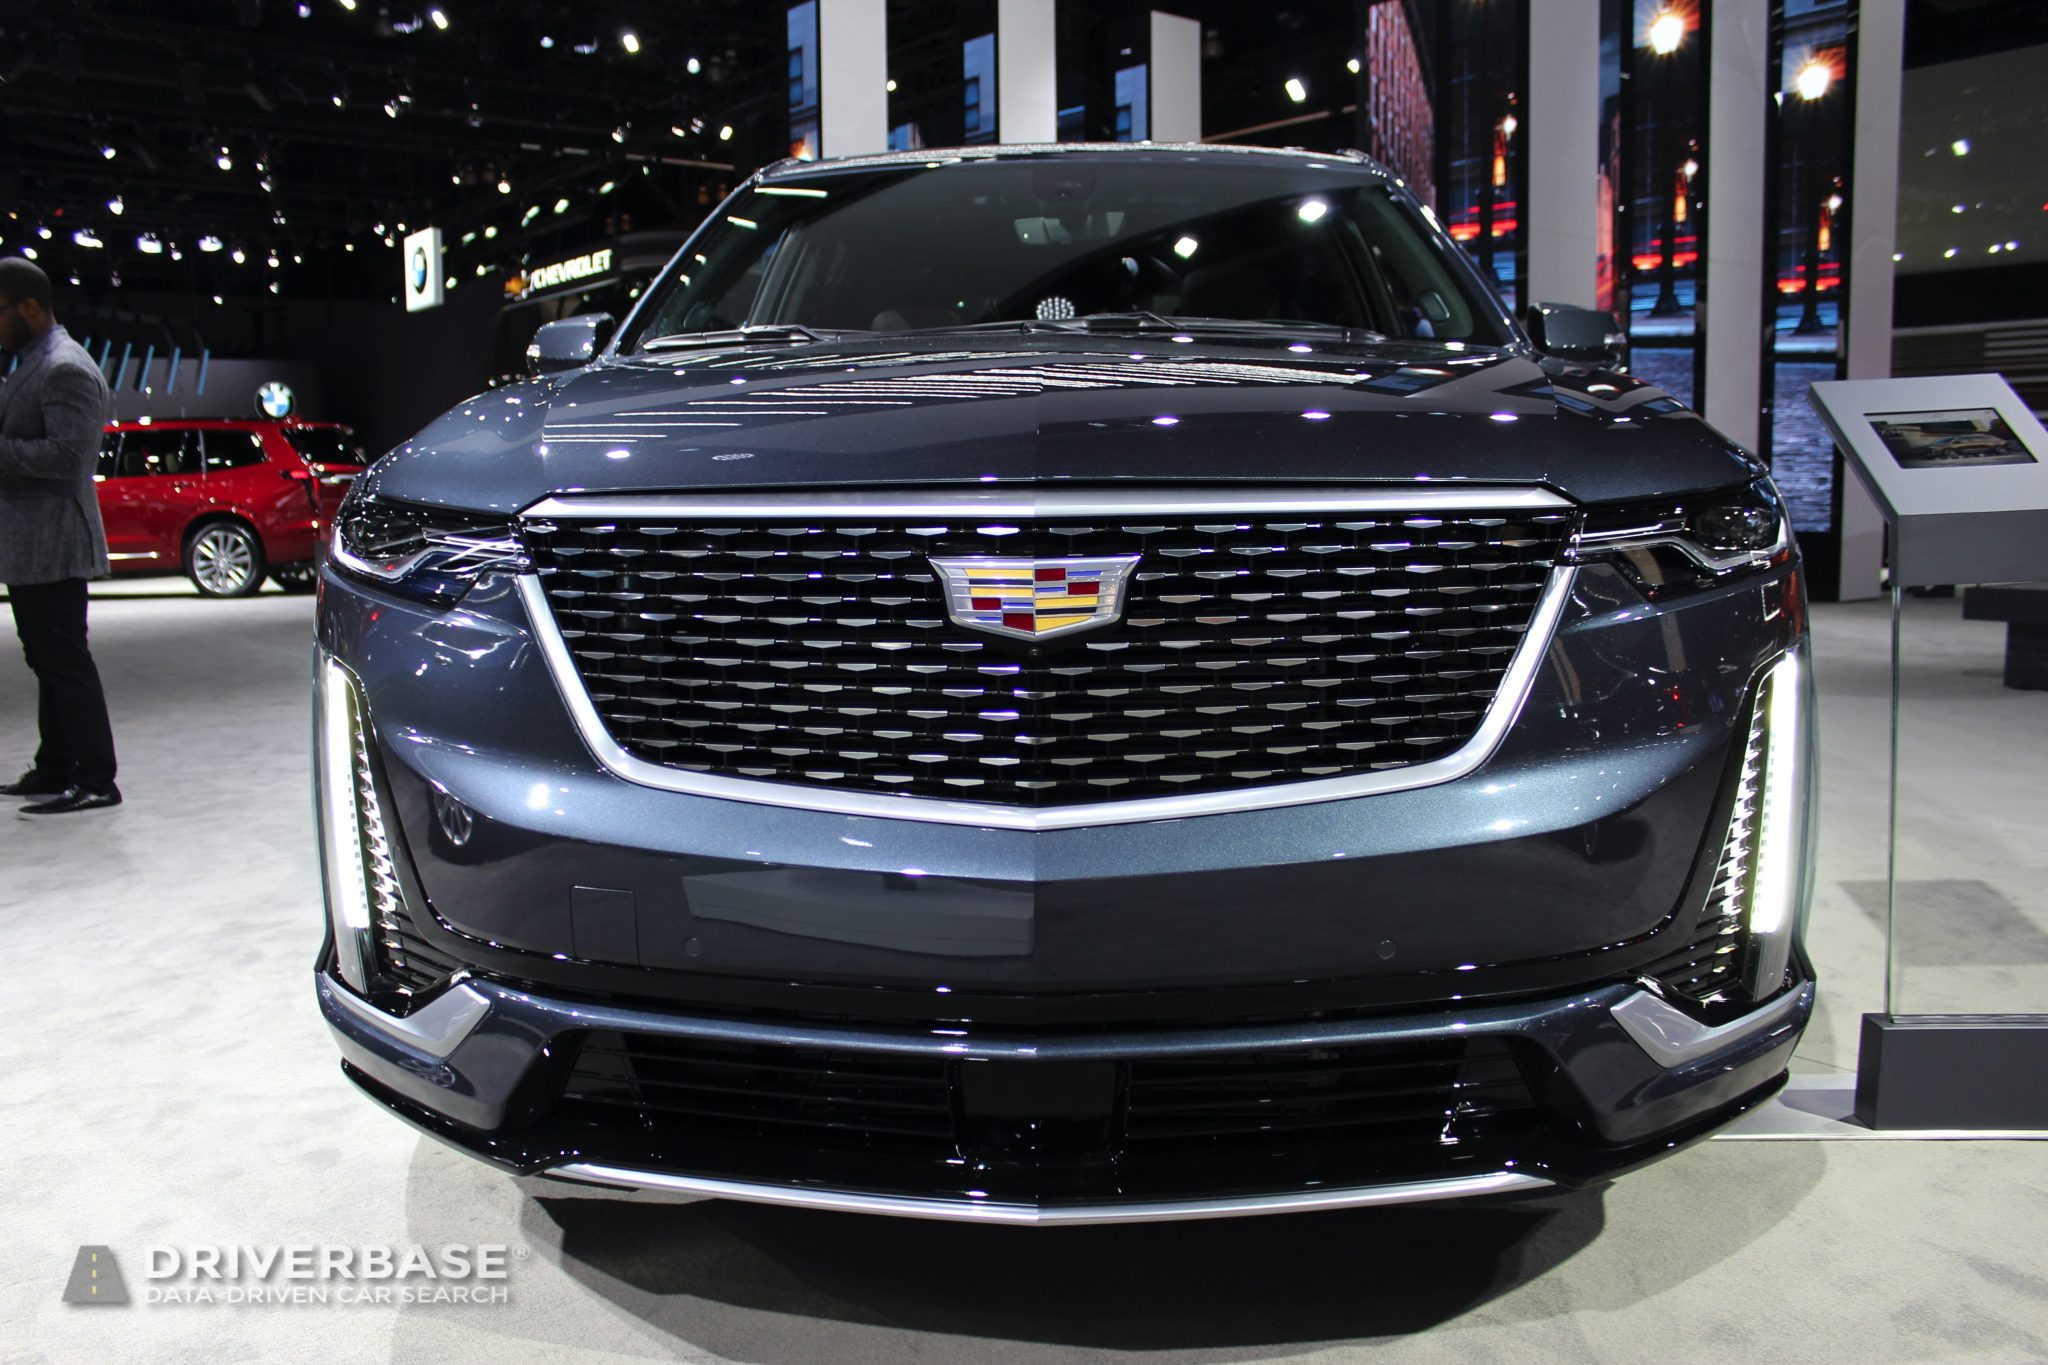 2020 Cadillac XT6 at the 2019 Los Angeles Auto Show